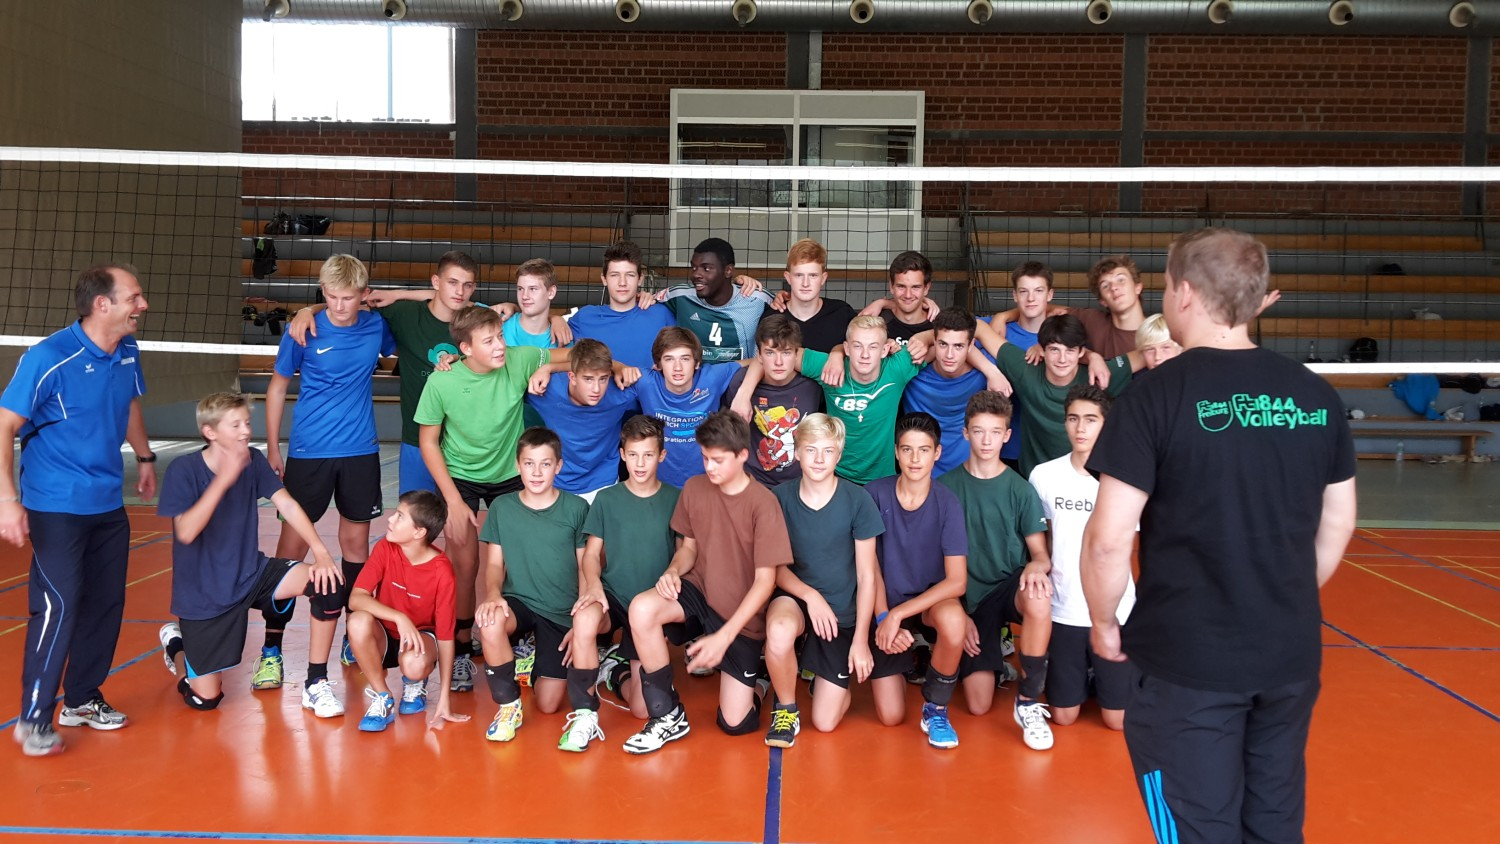 Recyclinghof Freiburg Ft Volleyball